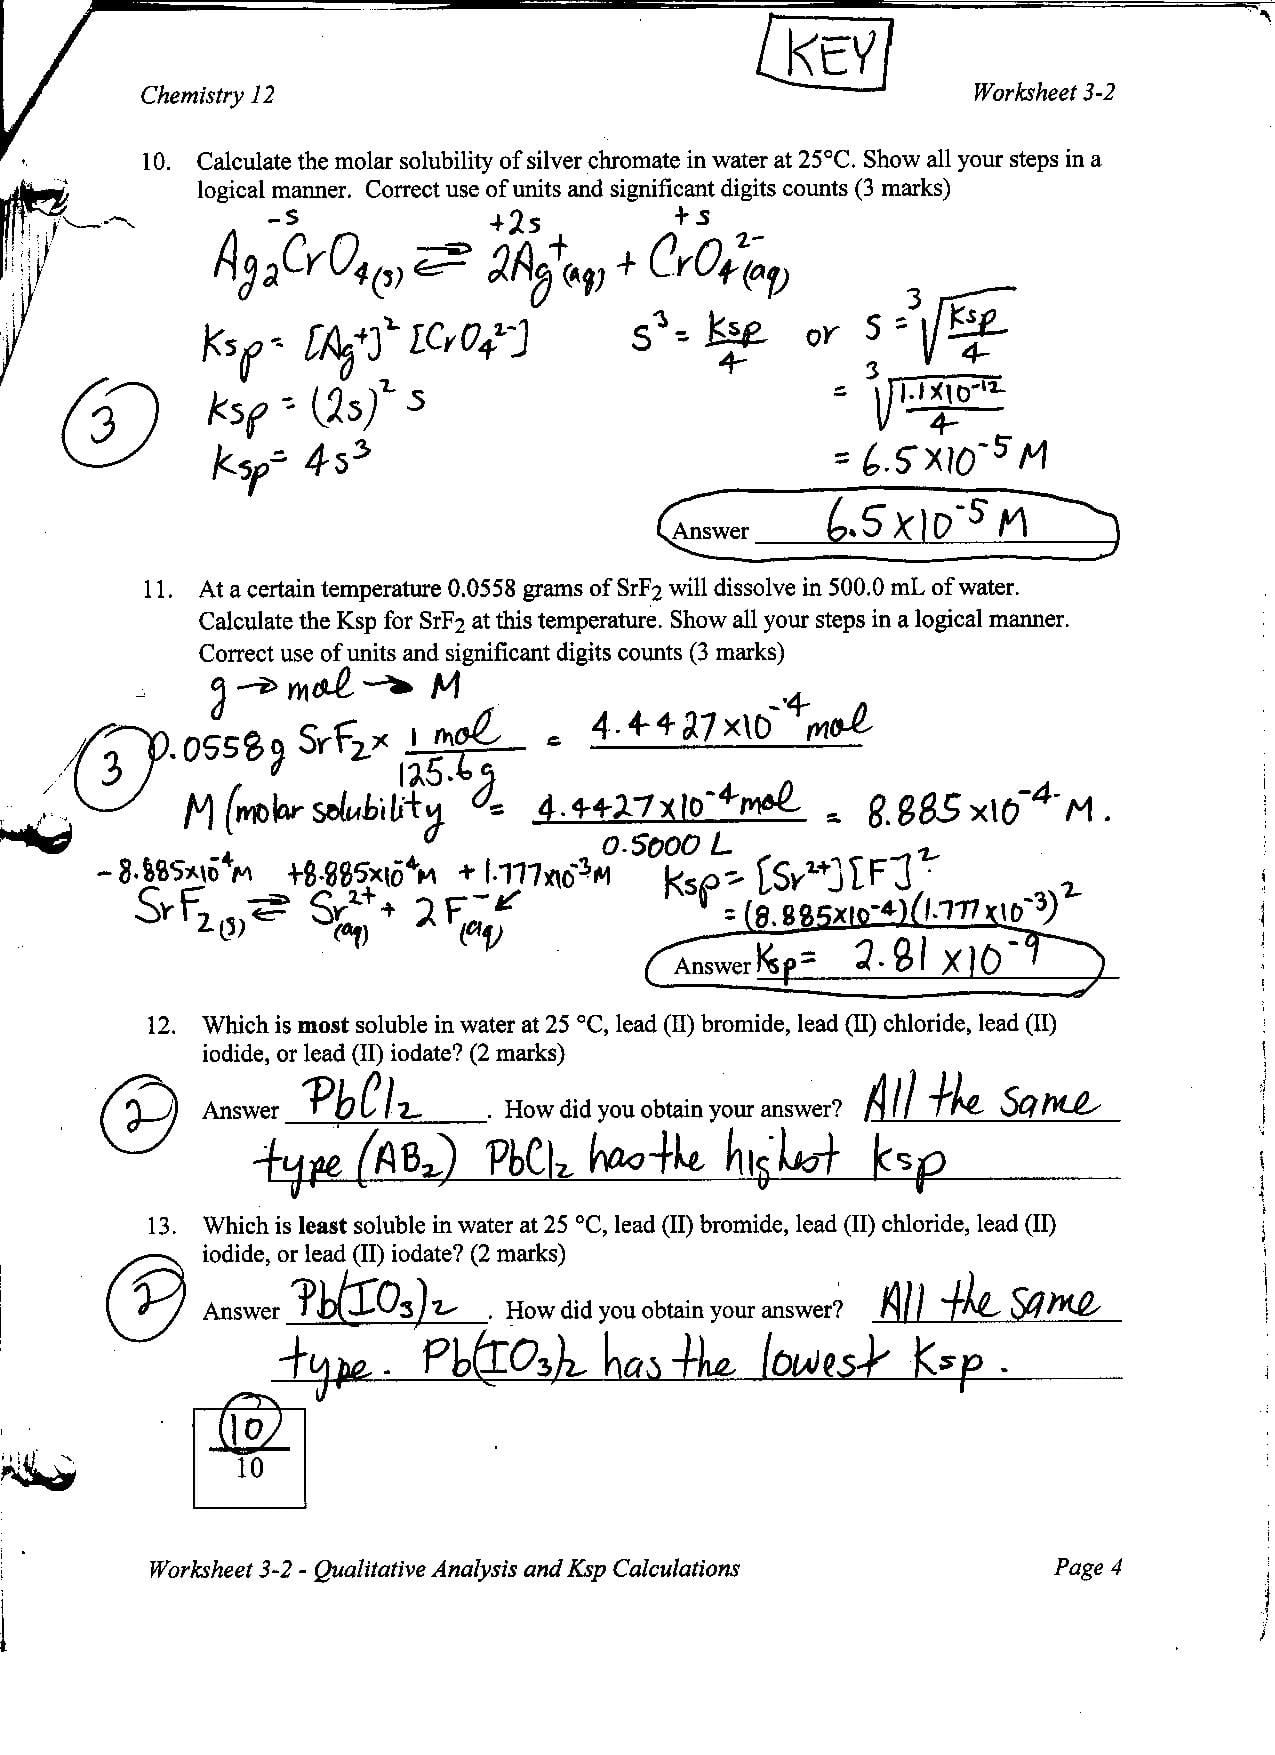 Chemistry Unit 4 Worksheet 2 Answers — excelguider.com